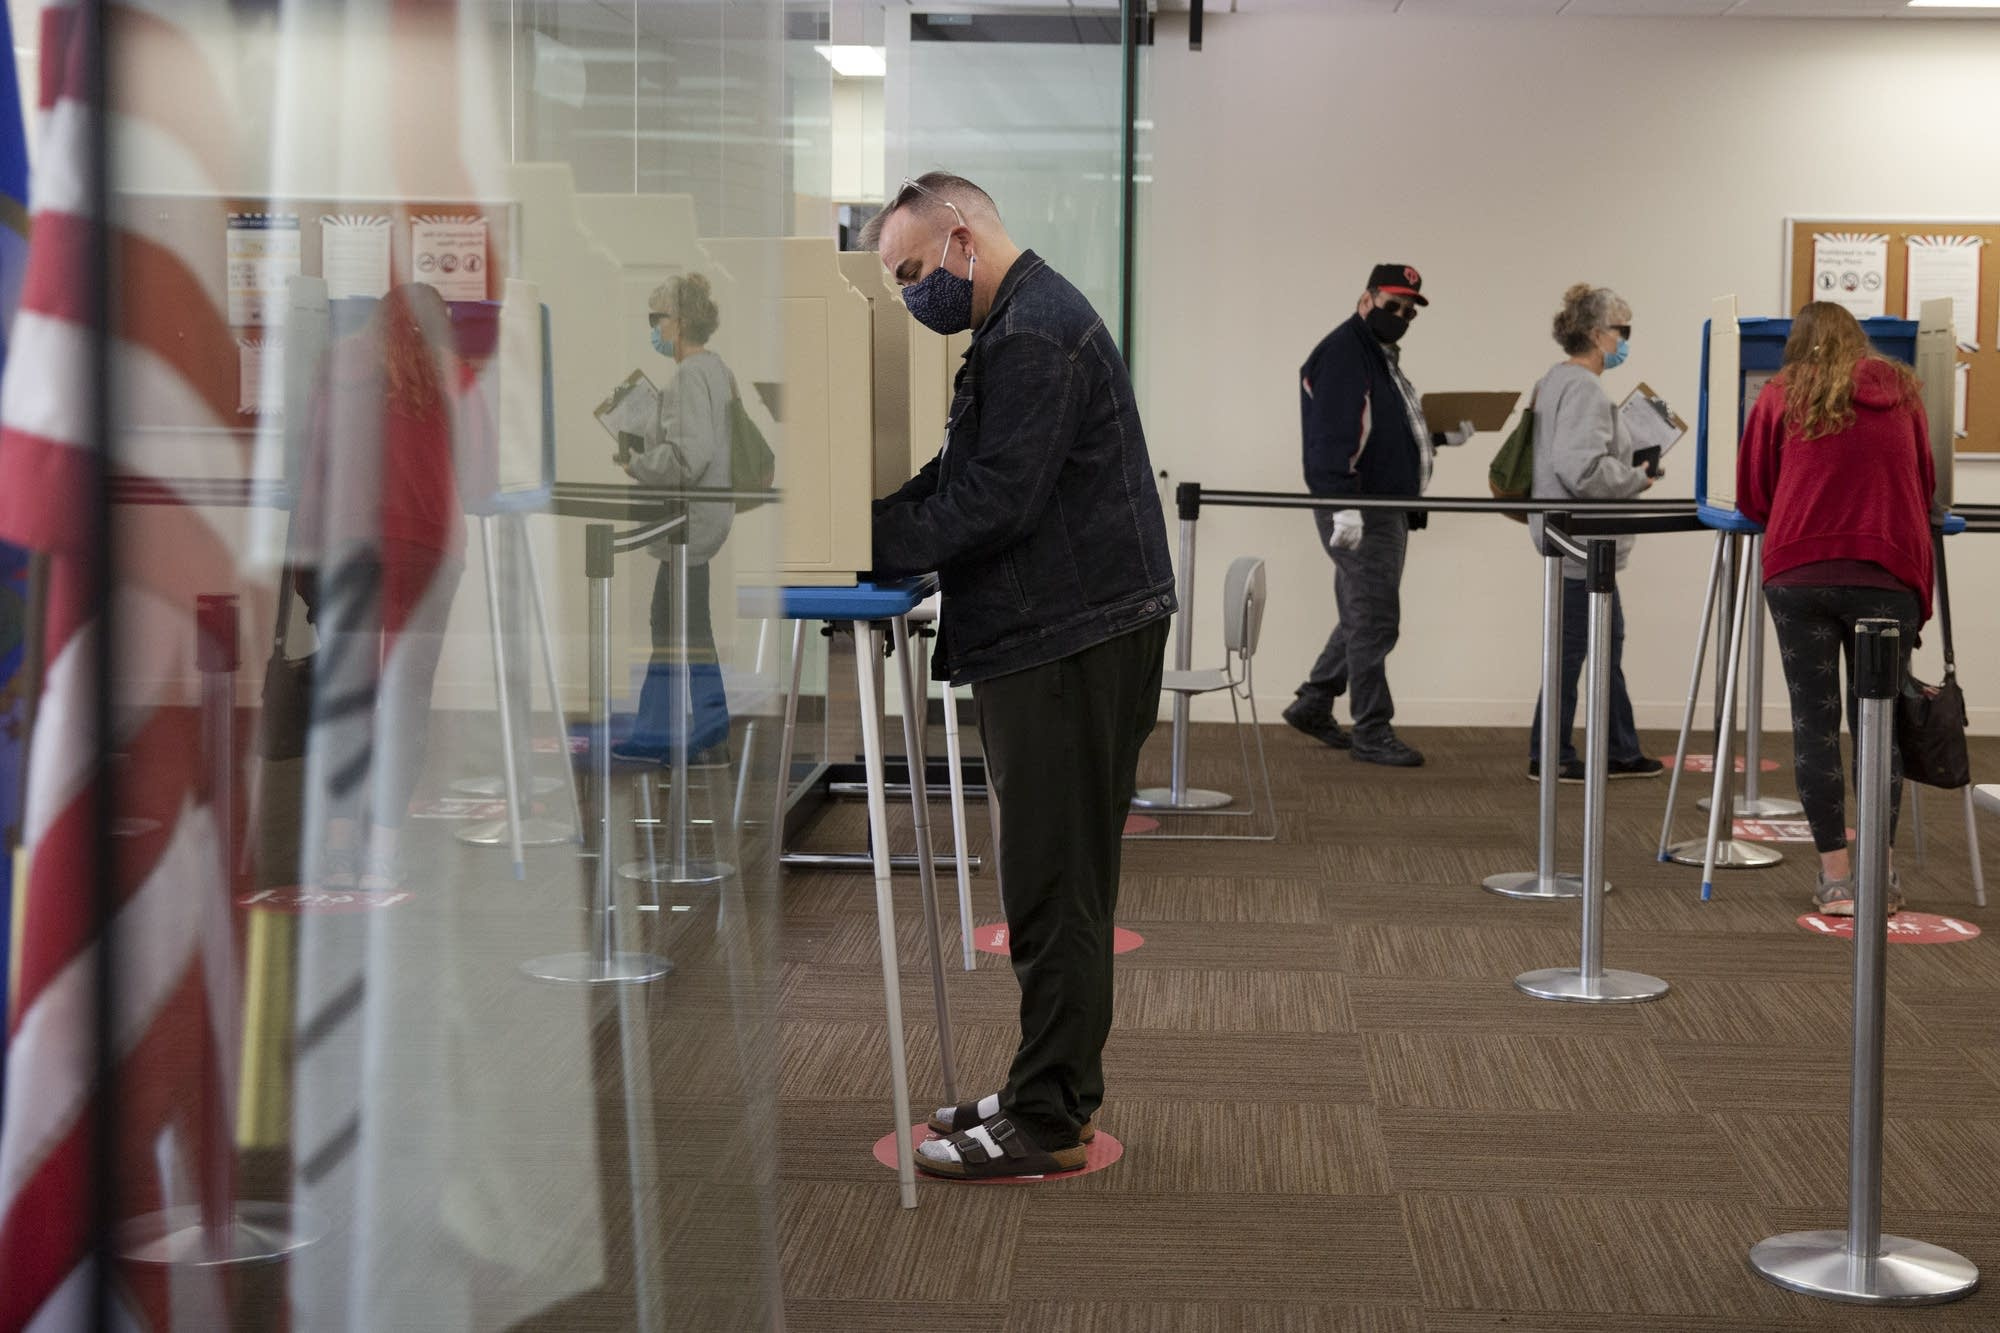 People standing at voting booths that are distanced apart from each other.